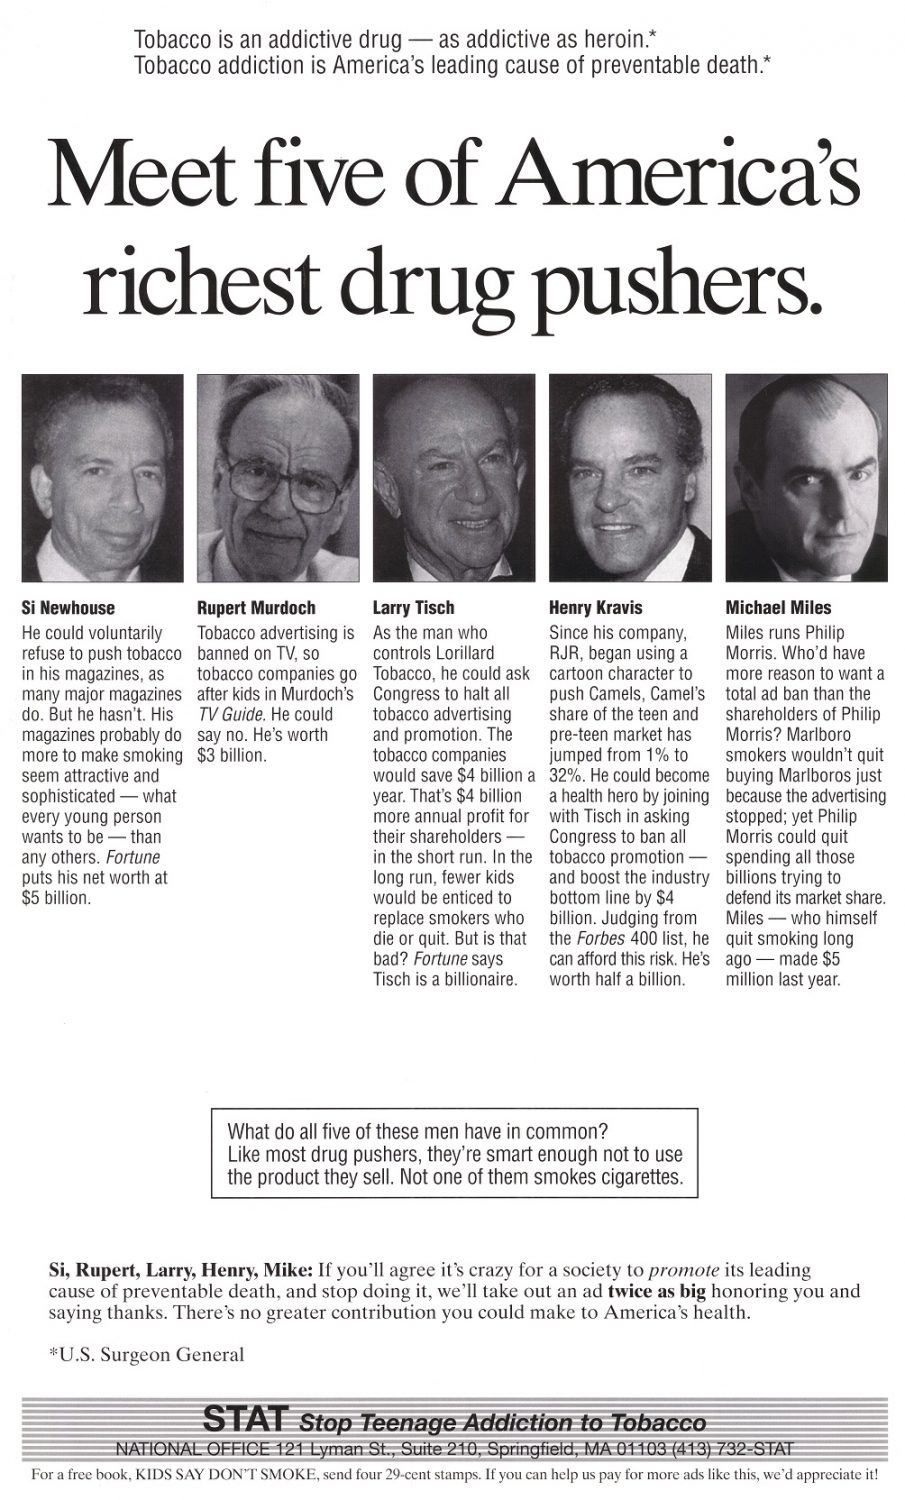 Meet Five of Americas Richest Drug Pushers STAT Stop Teenage Addicition to Tobacco